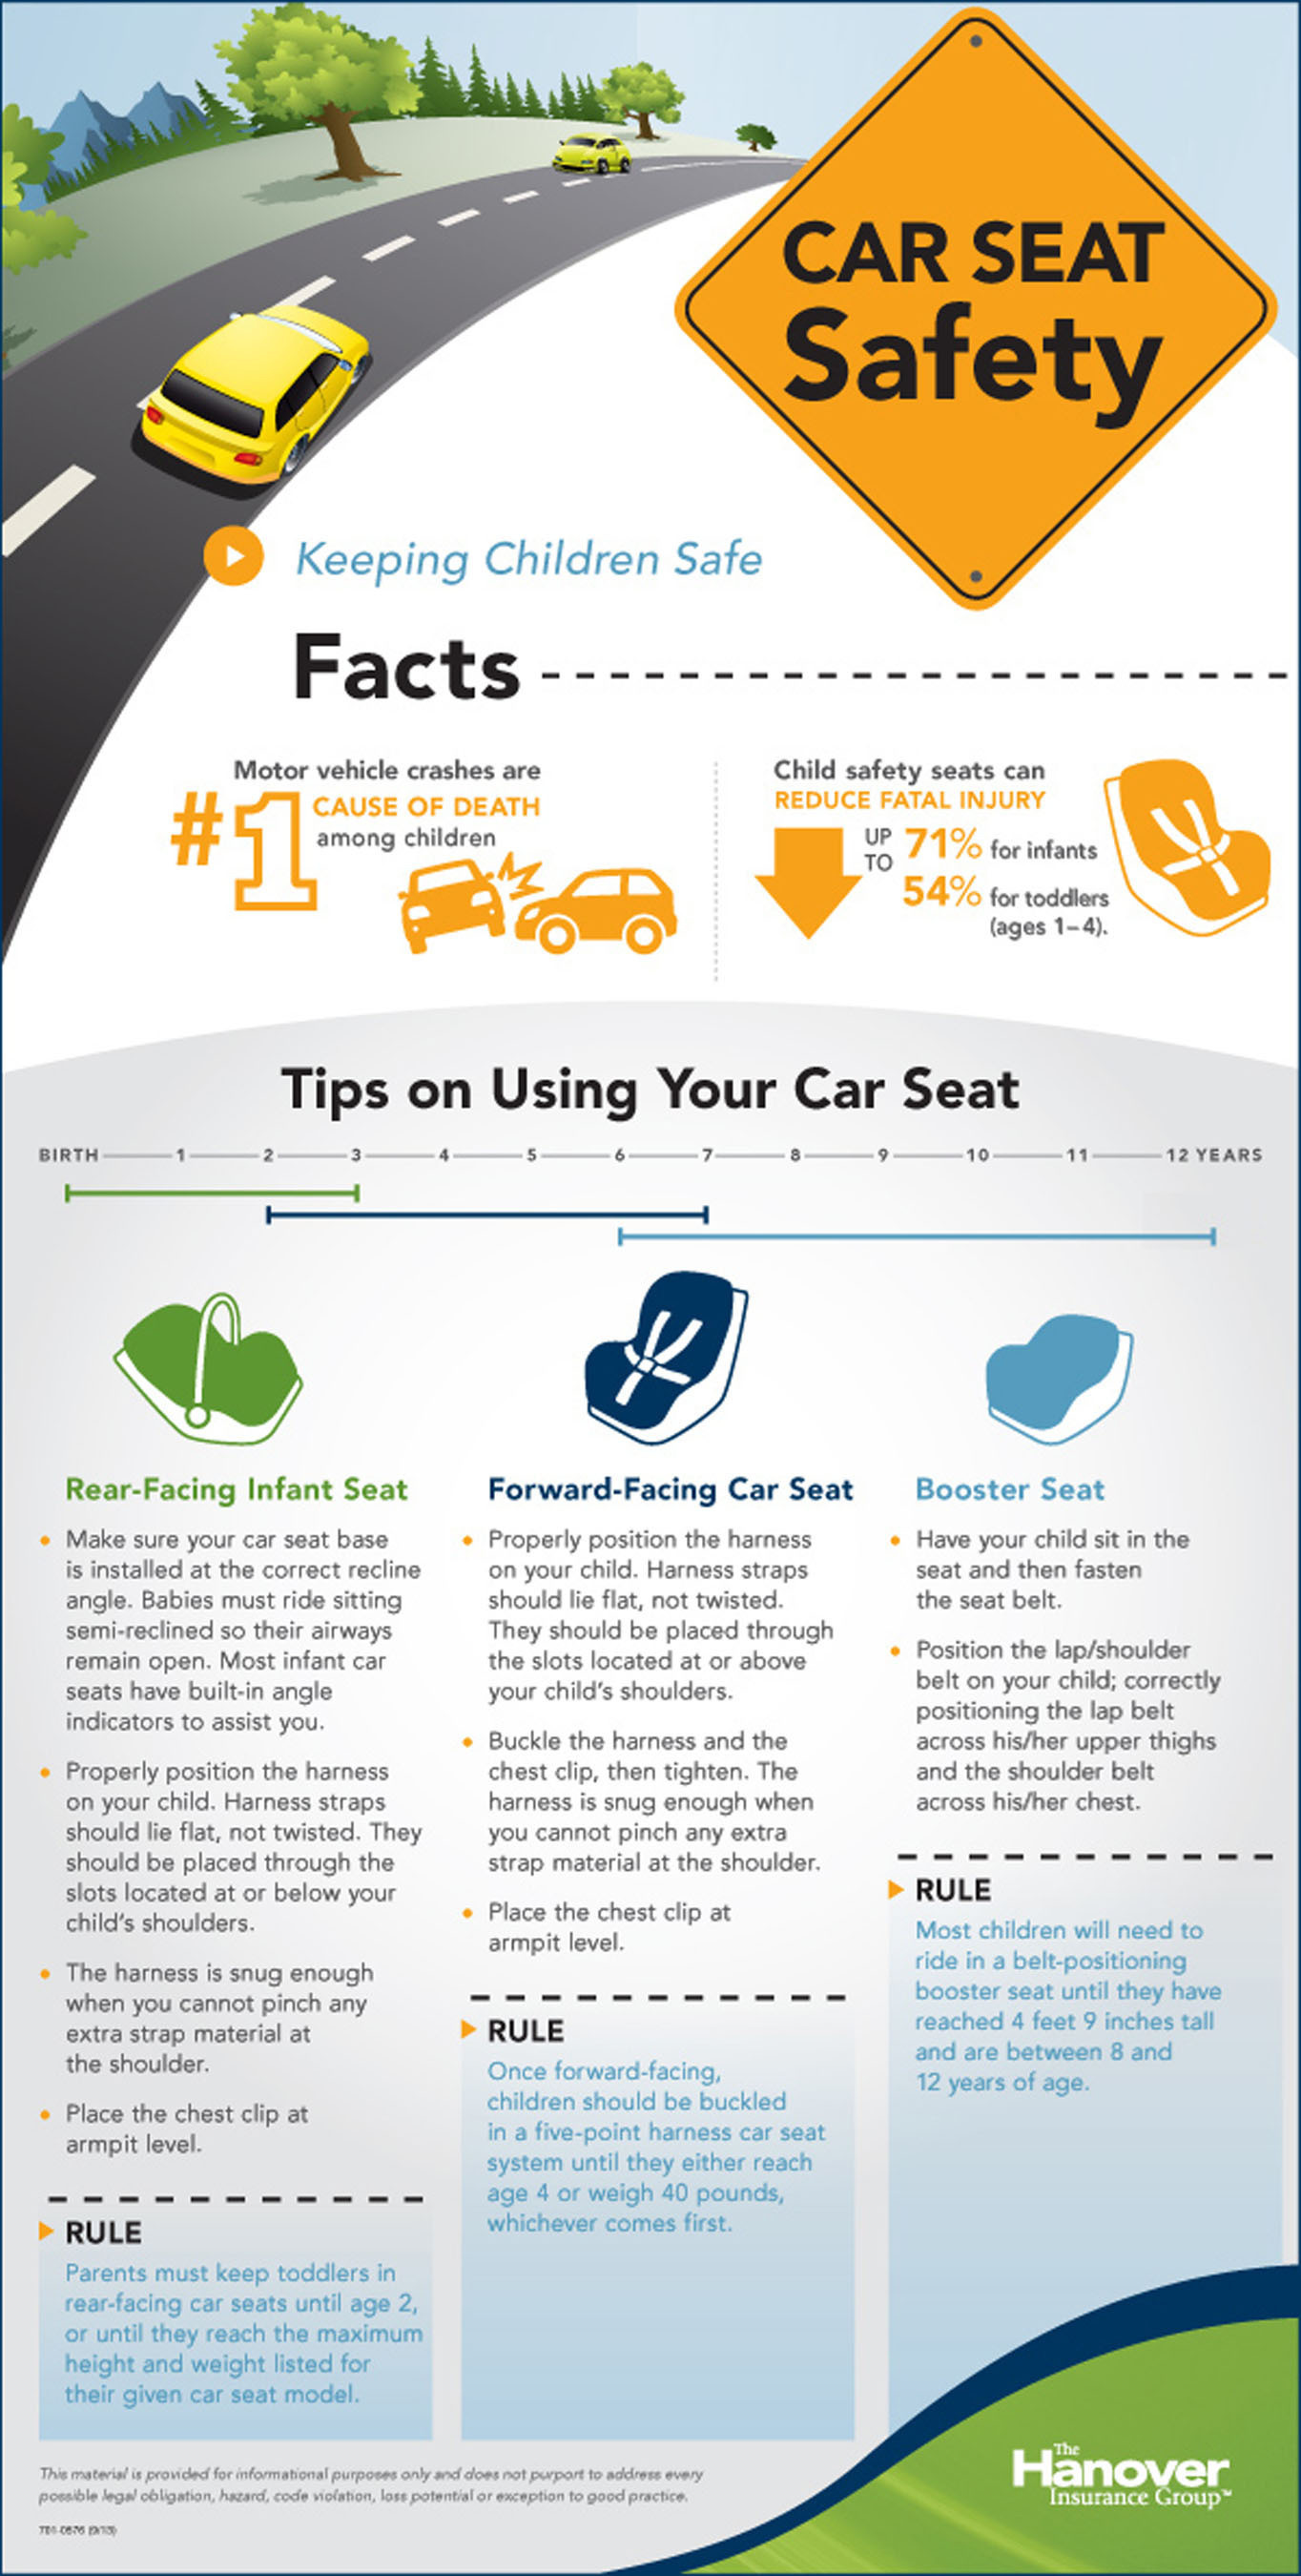 The Hanover Insurance Group Offers Car Seat Tips For Child